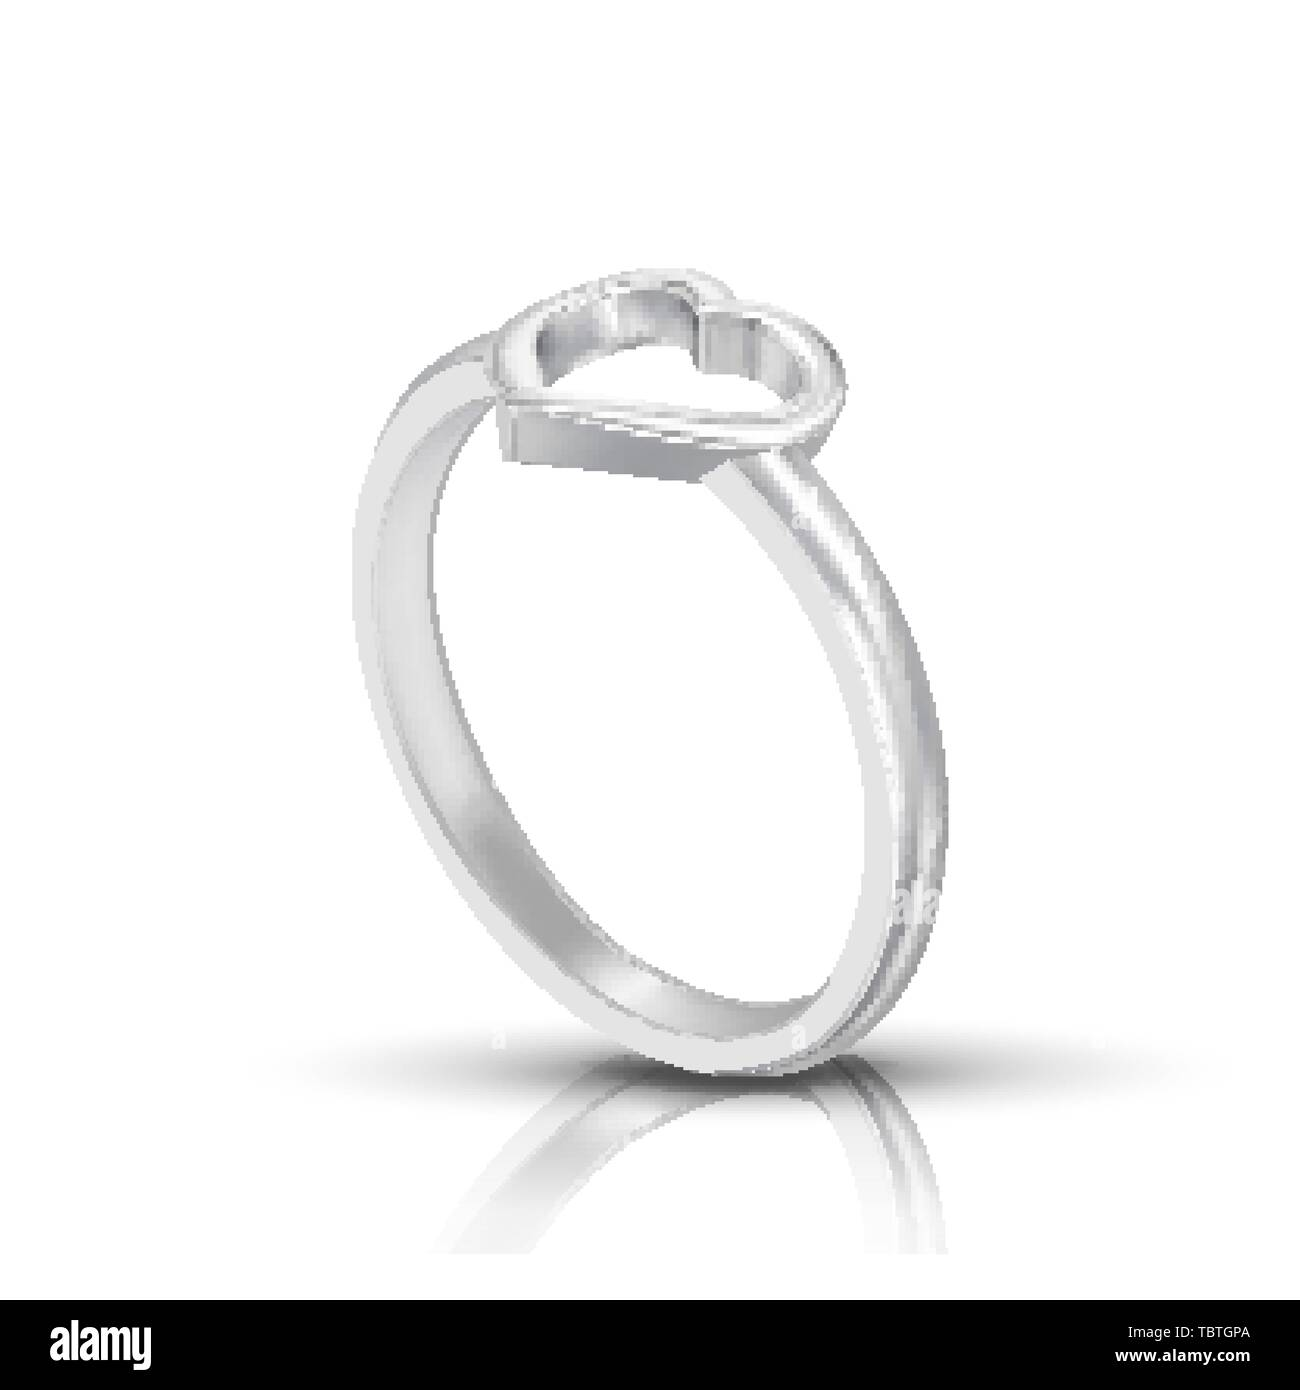 Silver Ring With Shape Of Heart On Top Vector - Stock Image